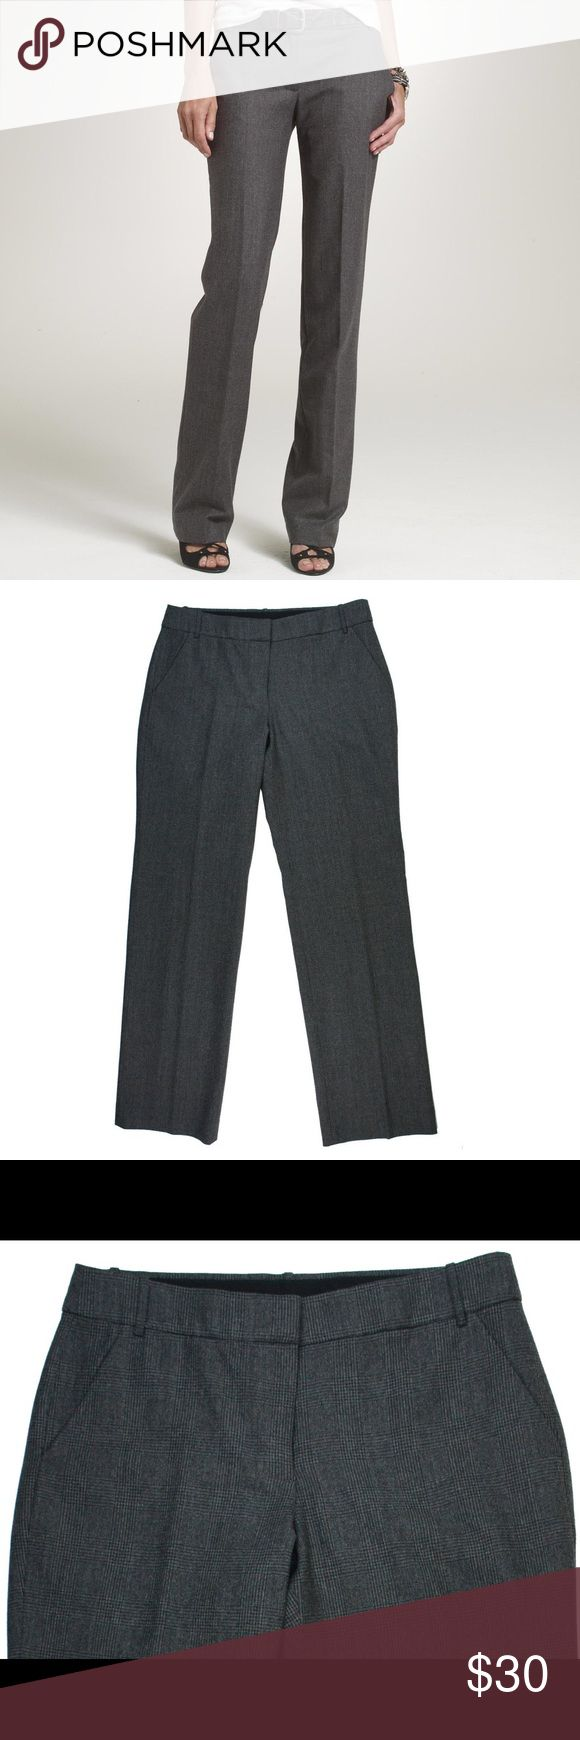 """JCREW Favorite Fit Gray Plaid Wool Trouser Pants Great condition! These gray plaid trouser pants from JCREW feature a zip tab closure and are fully lined. Made of a wool blend. Measures: waist: 31"""", rise: 8"""", hips: 40"""", inseam: 30"""" J. Crew Pants Trousers"""